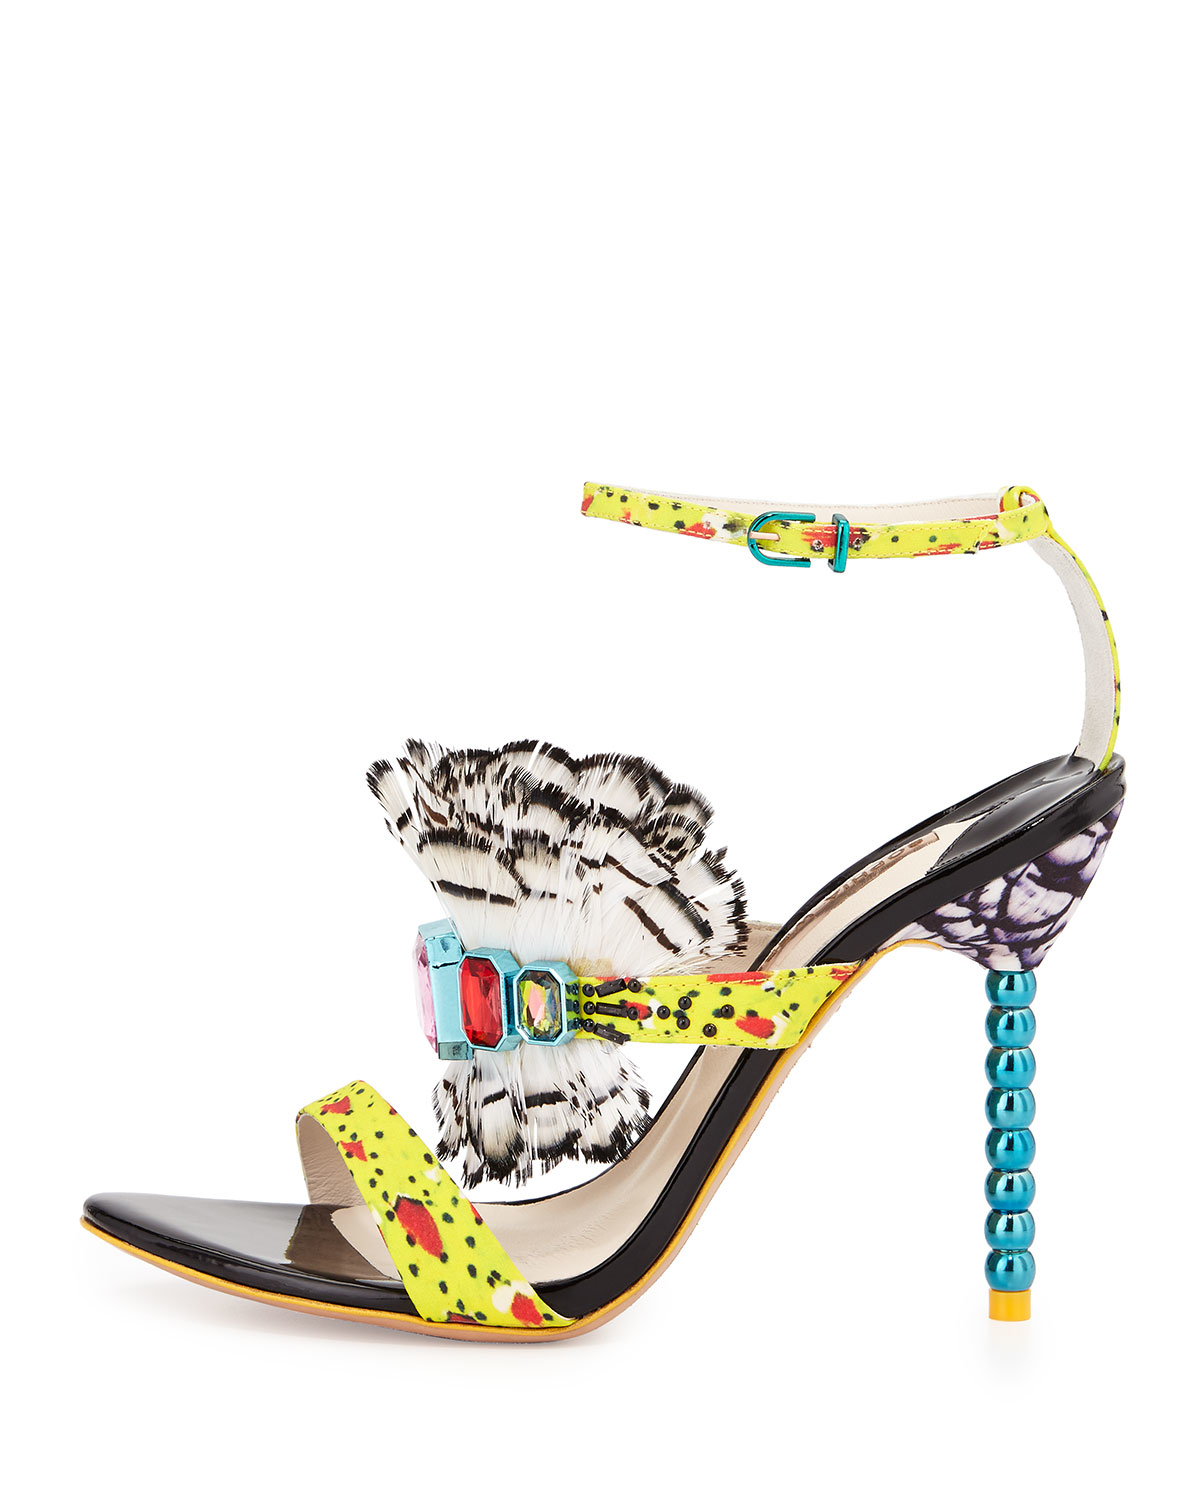 For Sale Cheap Price Rosalind Gem sandals - Black Sophia Webster Outlet Authentic Buy Cheap 2018 Clearance Fashionable 5ONoMj3Oj